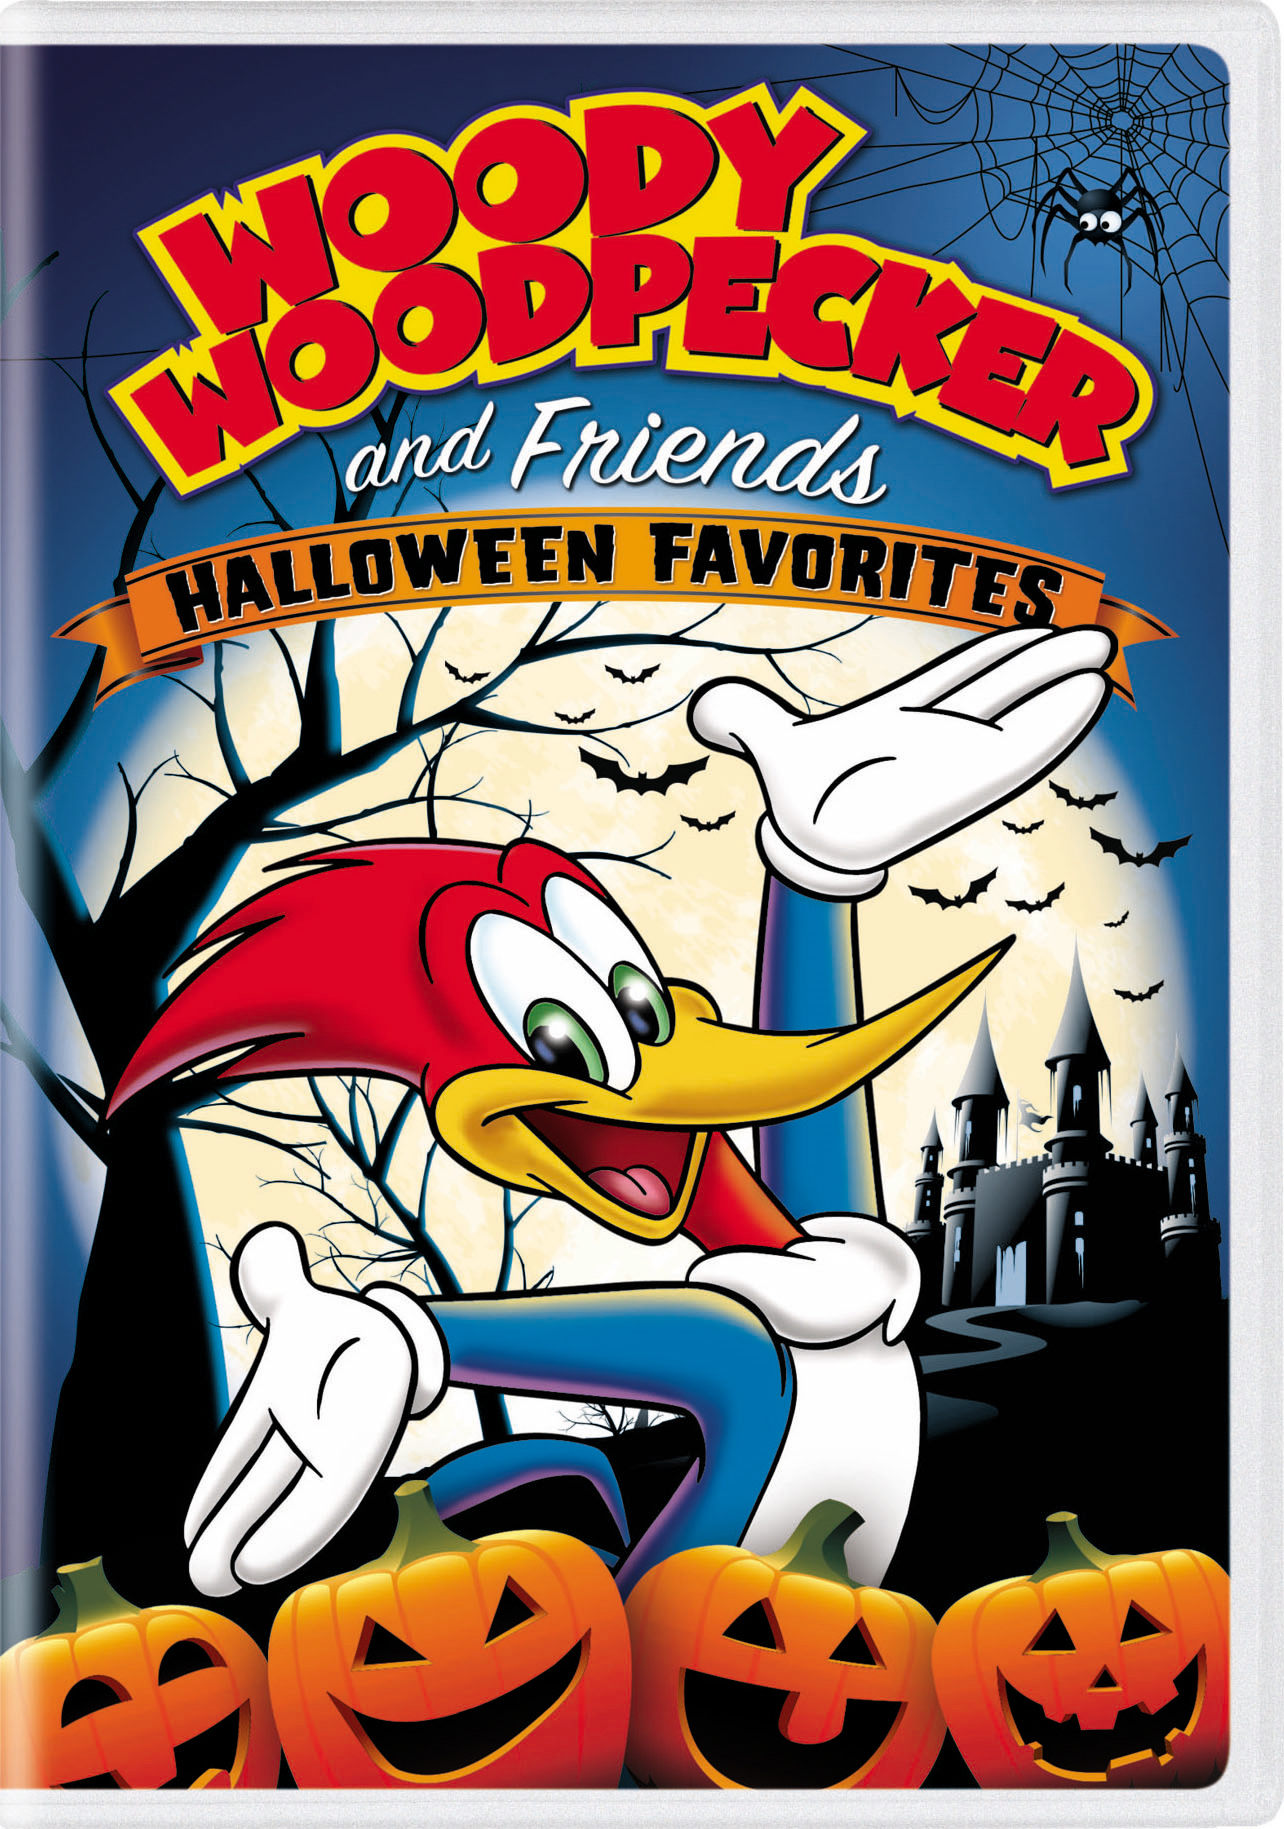 Woody Woodpecker and Friends - Halloween Favorites [DVD]